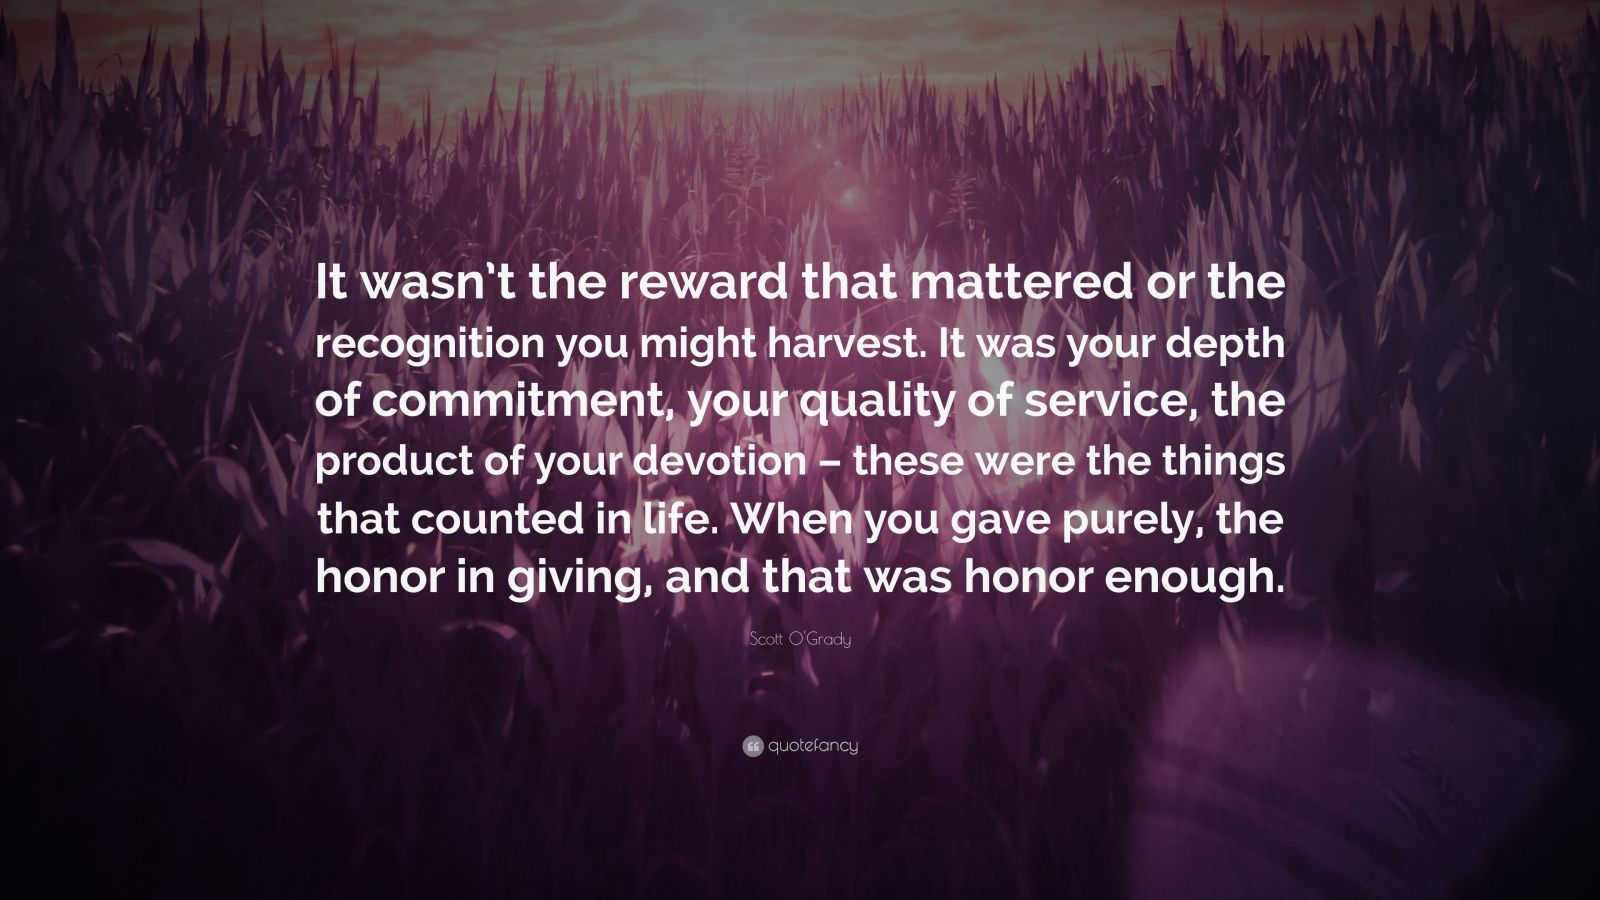 """Scott O'Grady Quote: """"It wasn't the reward that mattered or the recognition you might harvest. It was your depth of commitment, your quality of service, the product of your devotion – these were the things that counted in life. When you gave purely, the honor in giving, and that was honor enough."""""""